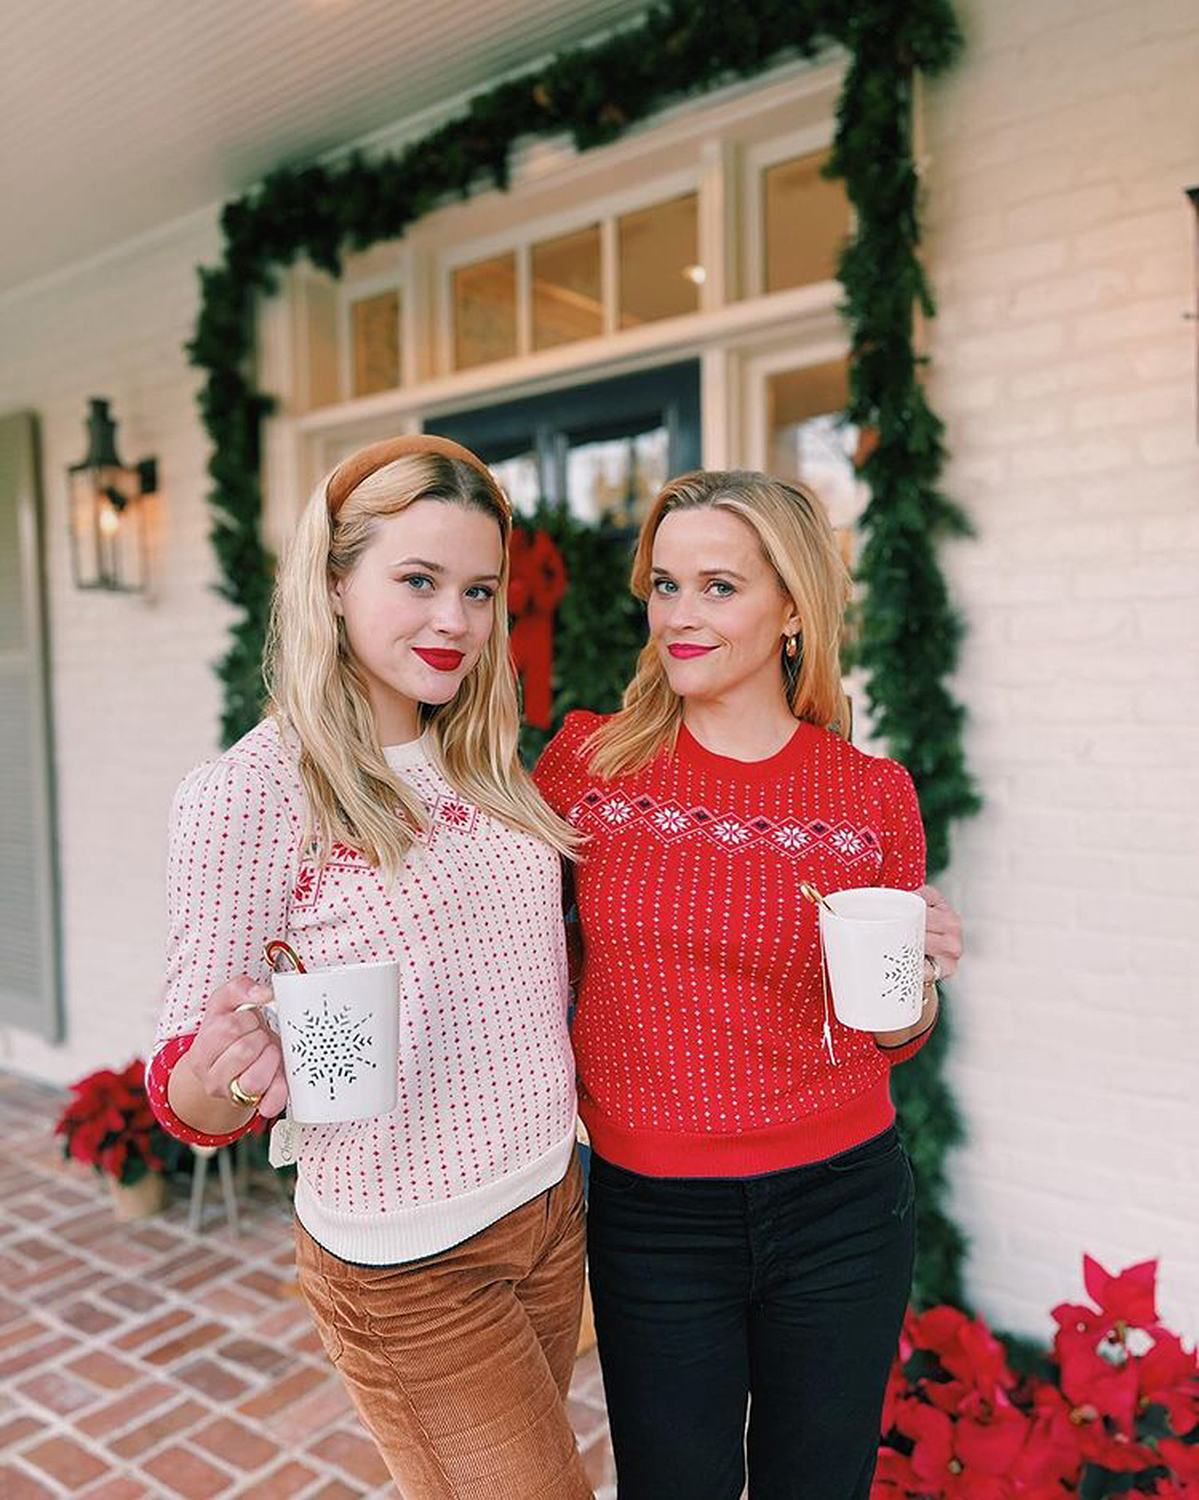 Ava Philippe, Reese Witherspoon